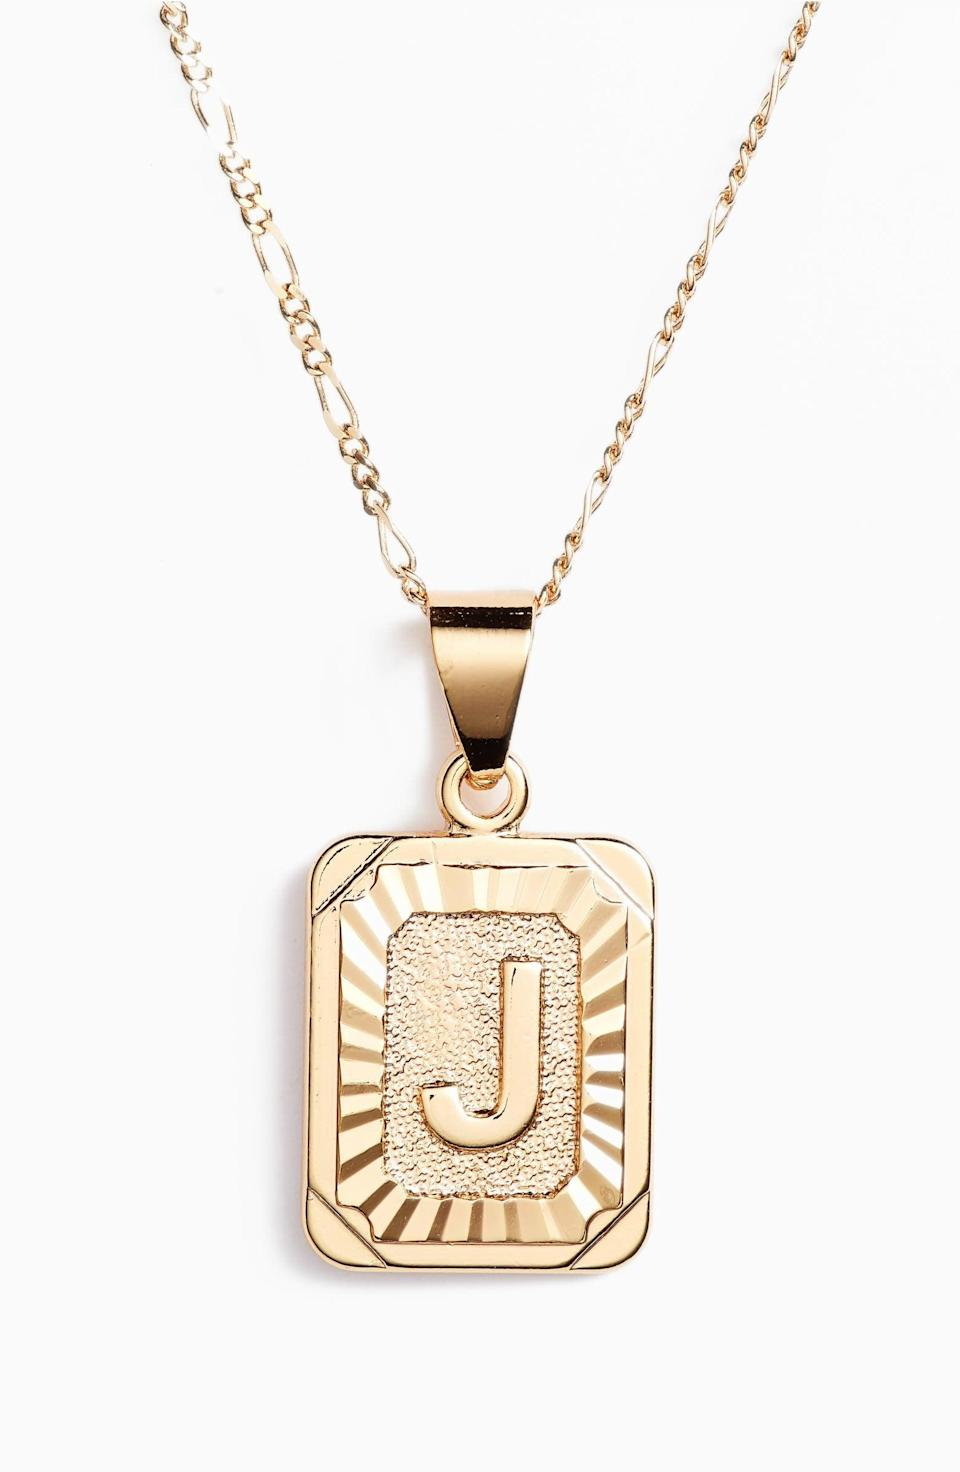 <p>This <span>Bracha Initial Pendant Necklace</span> ($50) will feel uniquely theirs, thanks to the custom letter. Whoever you gift it to, it'll become their favorite piece for sure.</p>